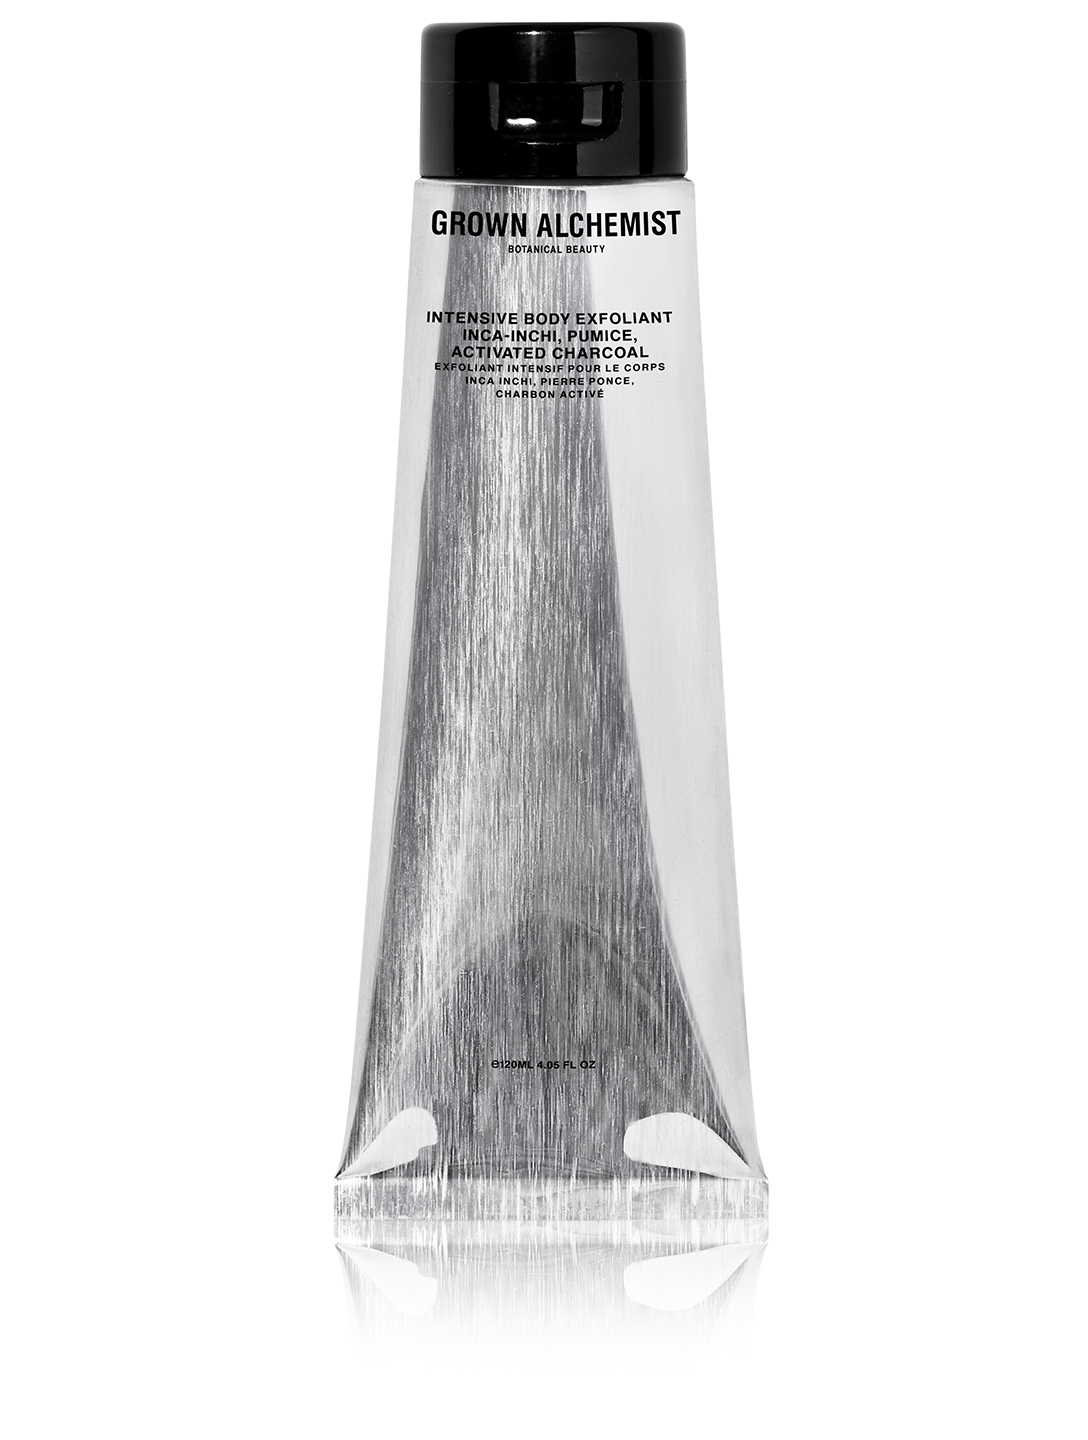 GROWN ALCHEMIST Intensive Body Exfoliant: Inca-Inchi, Pumice, Activated Charcoal Beauty